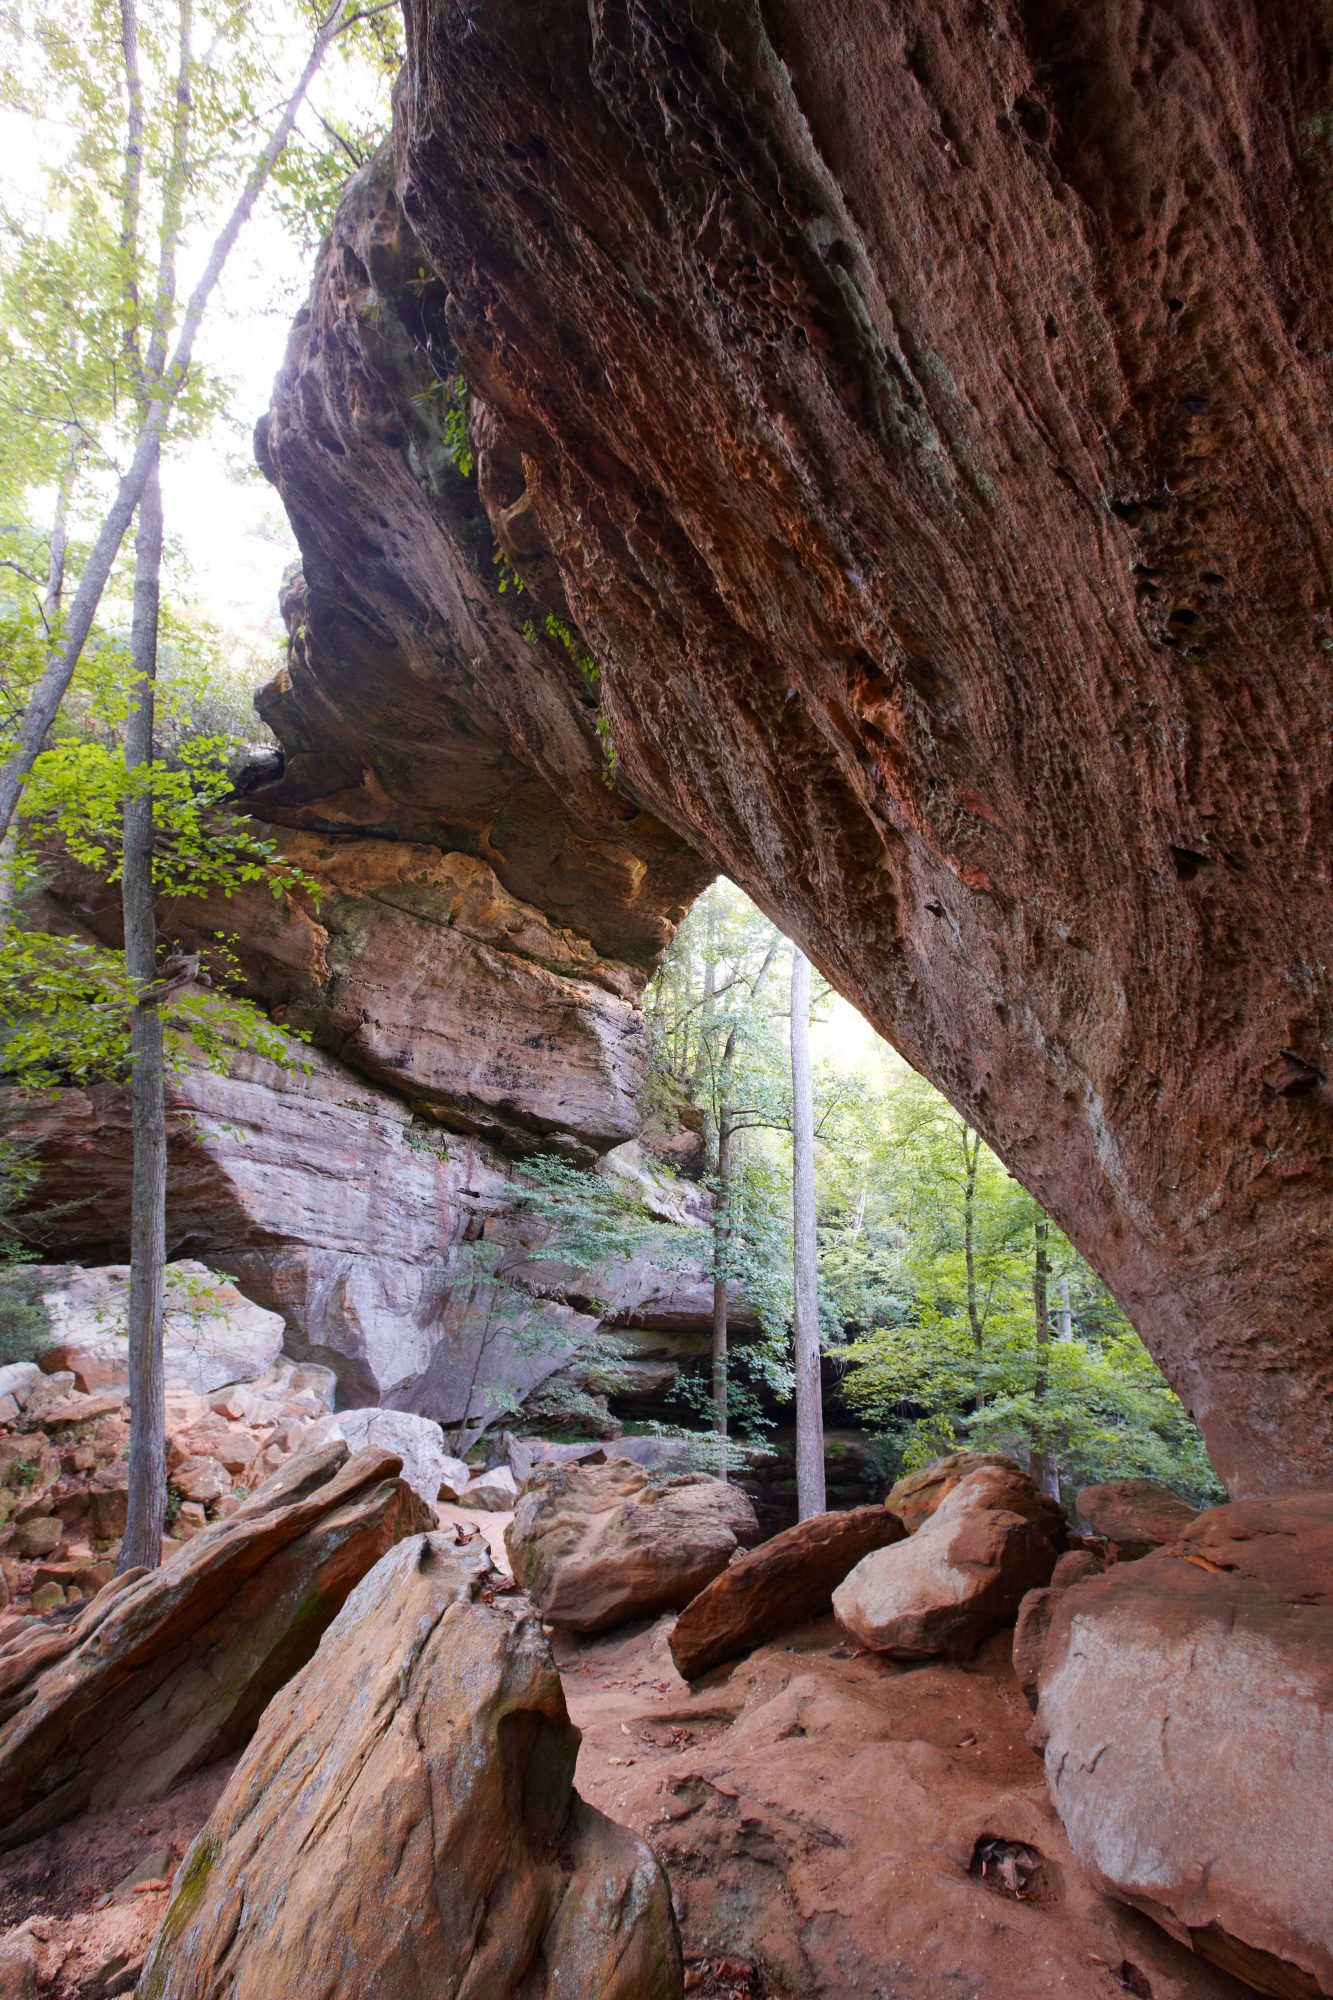 Red River Gorge Geological Area in Kentucky